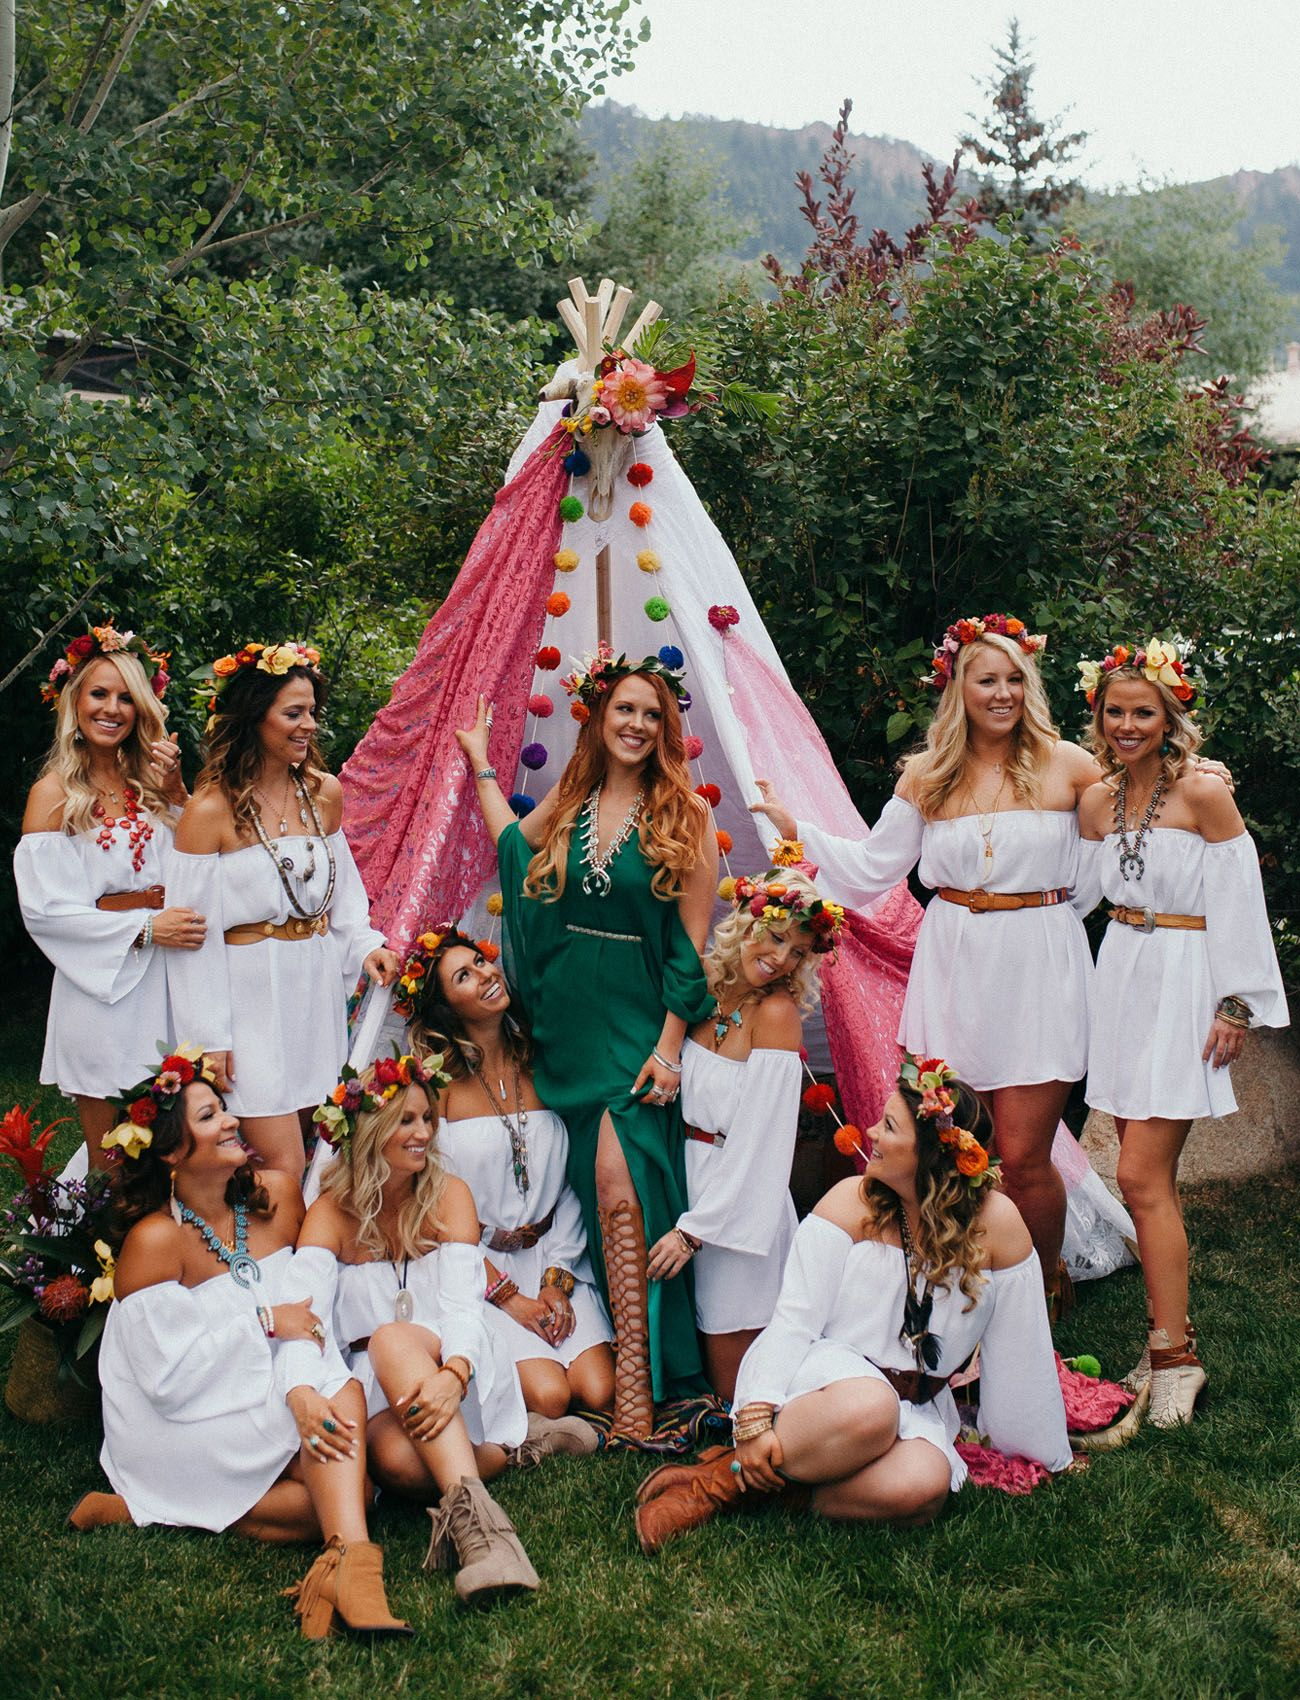 This Bride Threw Her Bridesmaids The Ultimate Boho Party The Day Before The Wedding Green Wedding Shoes Boho Bachelorette Party Boho Bachelorette Party Ideas Boho Bachelorette